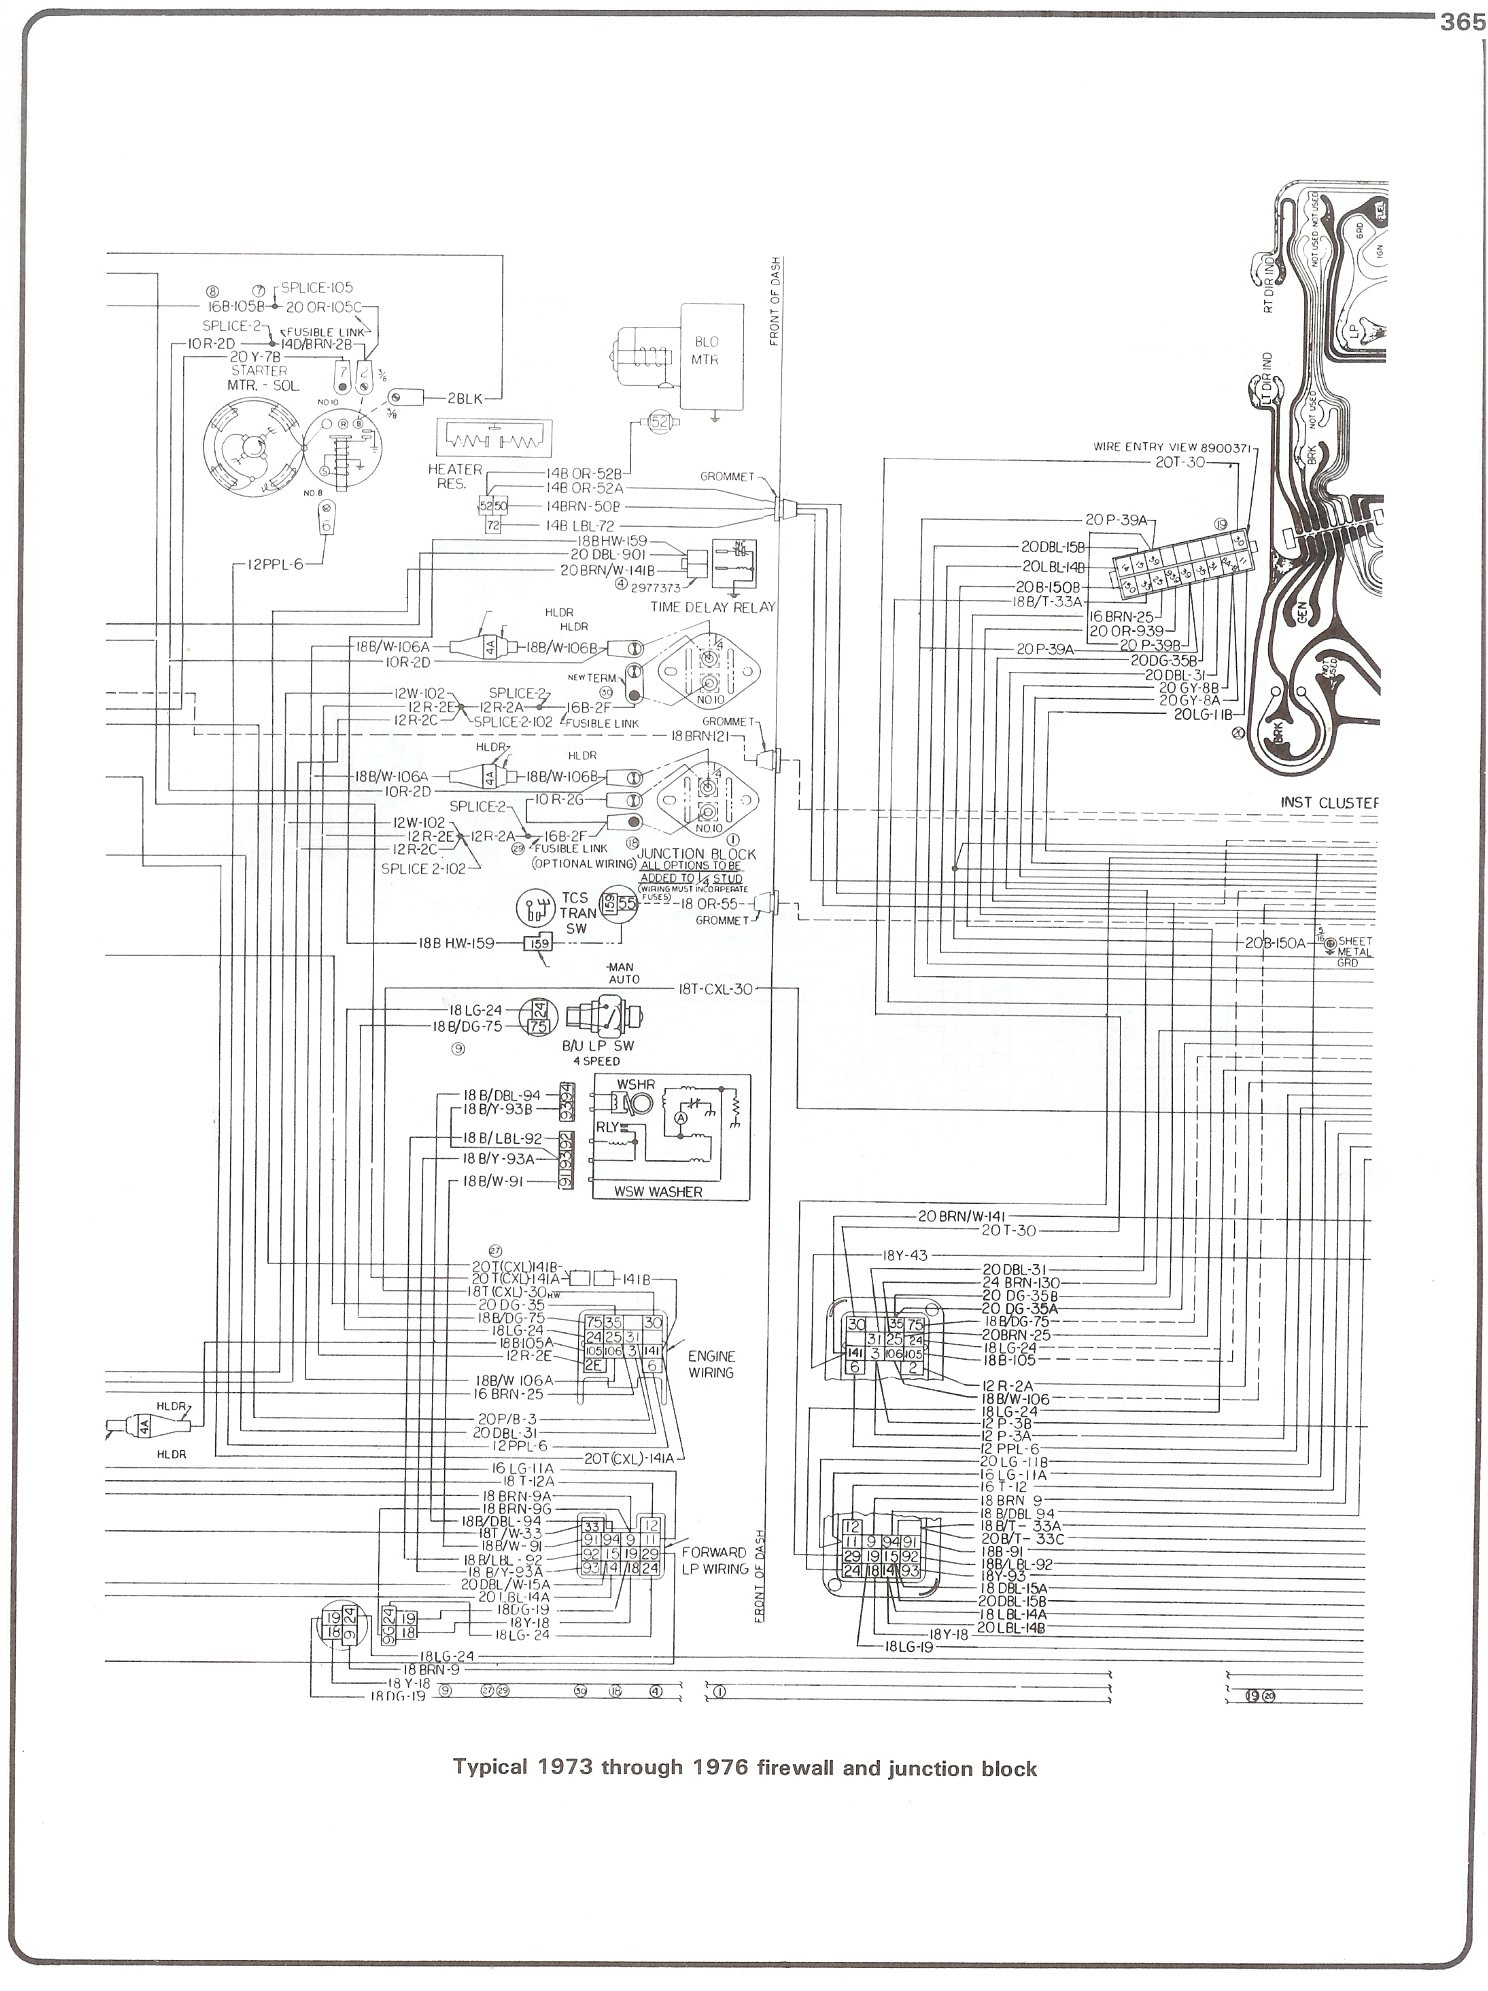 1984 Dodge Van Ignition Wiring Diagrams Library B250 Diagram Free